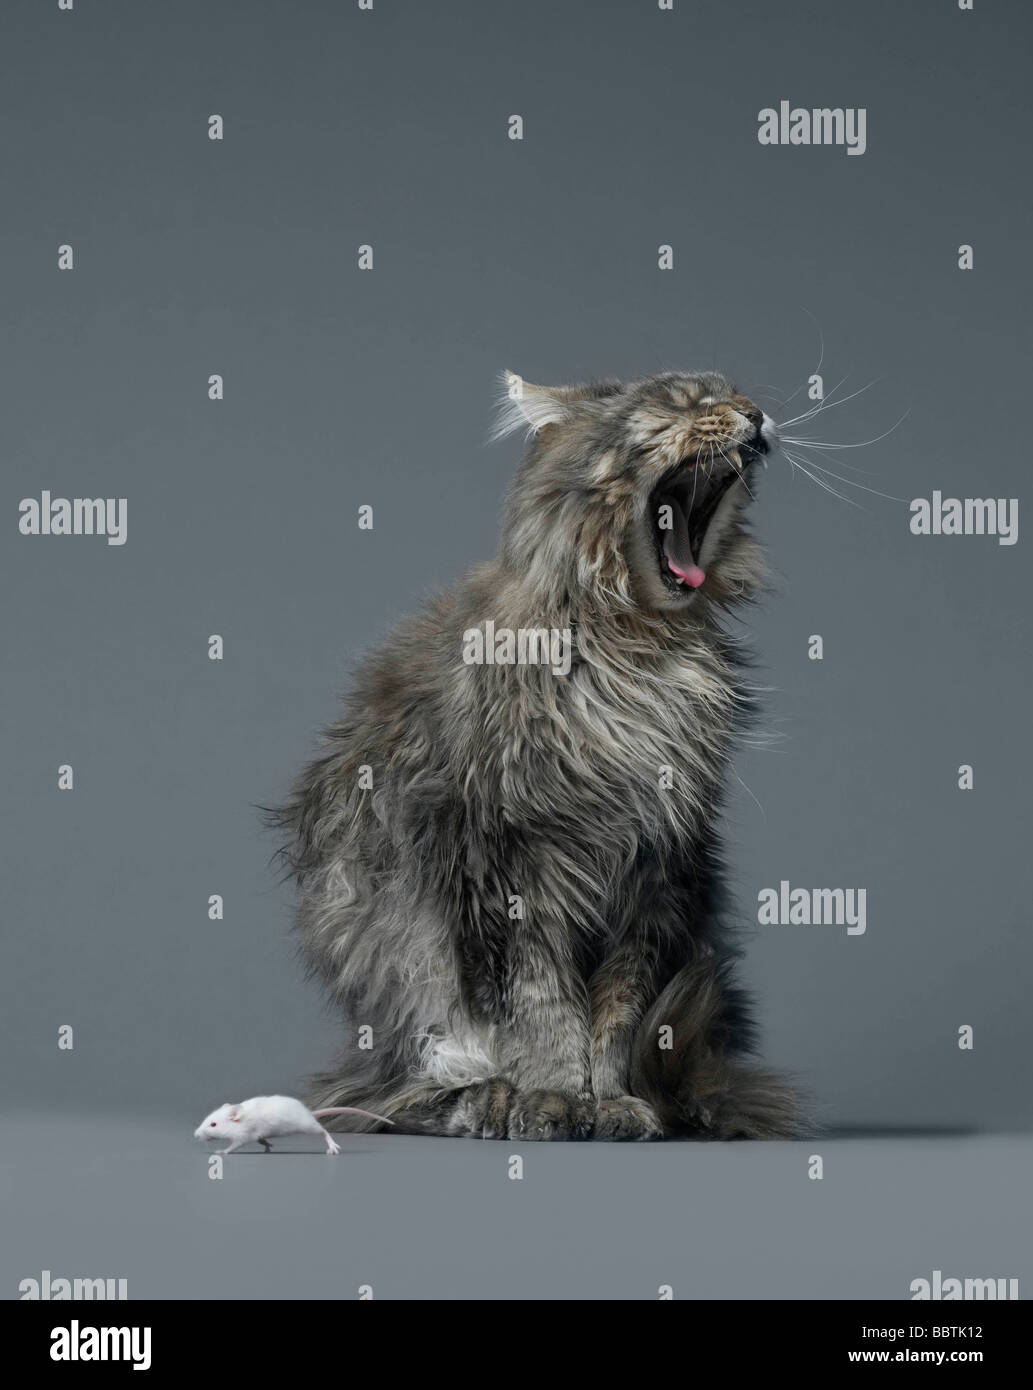 Mouse escaping yawning cat - Stock Image